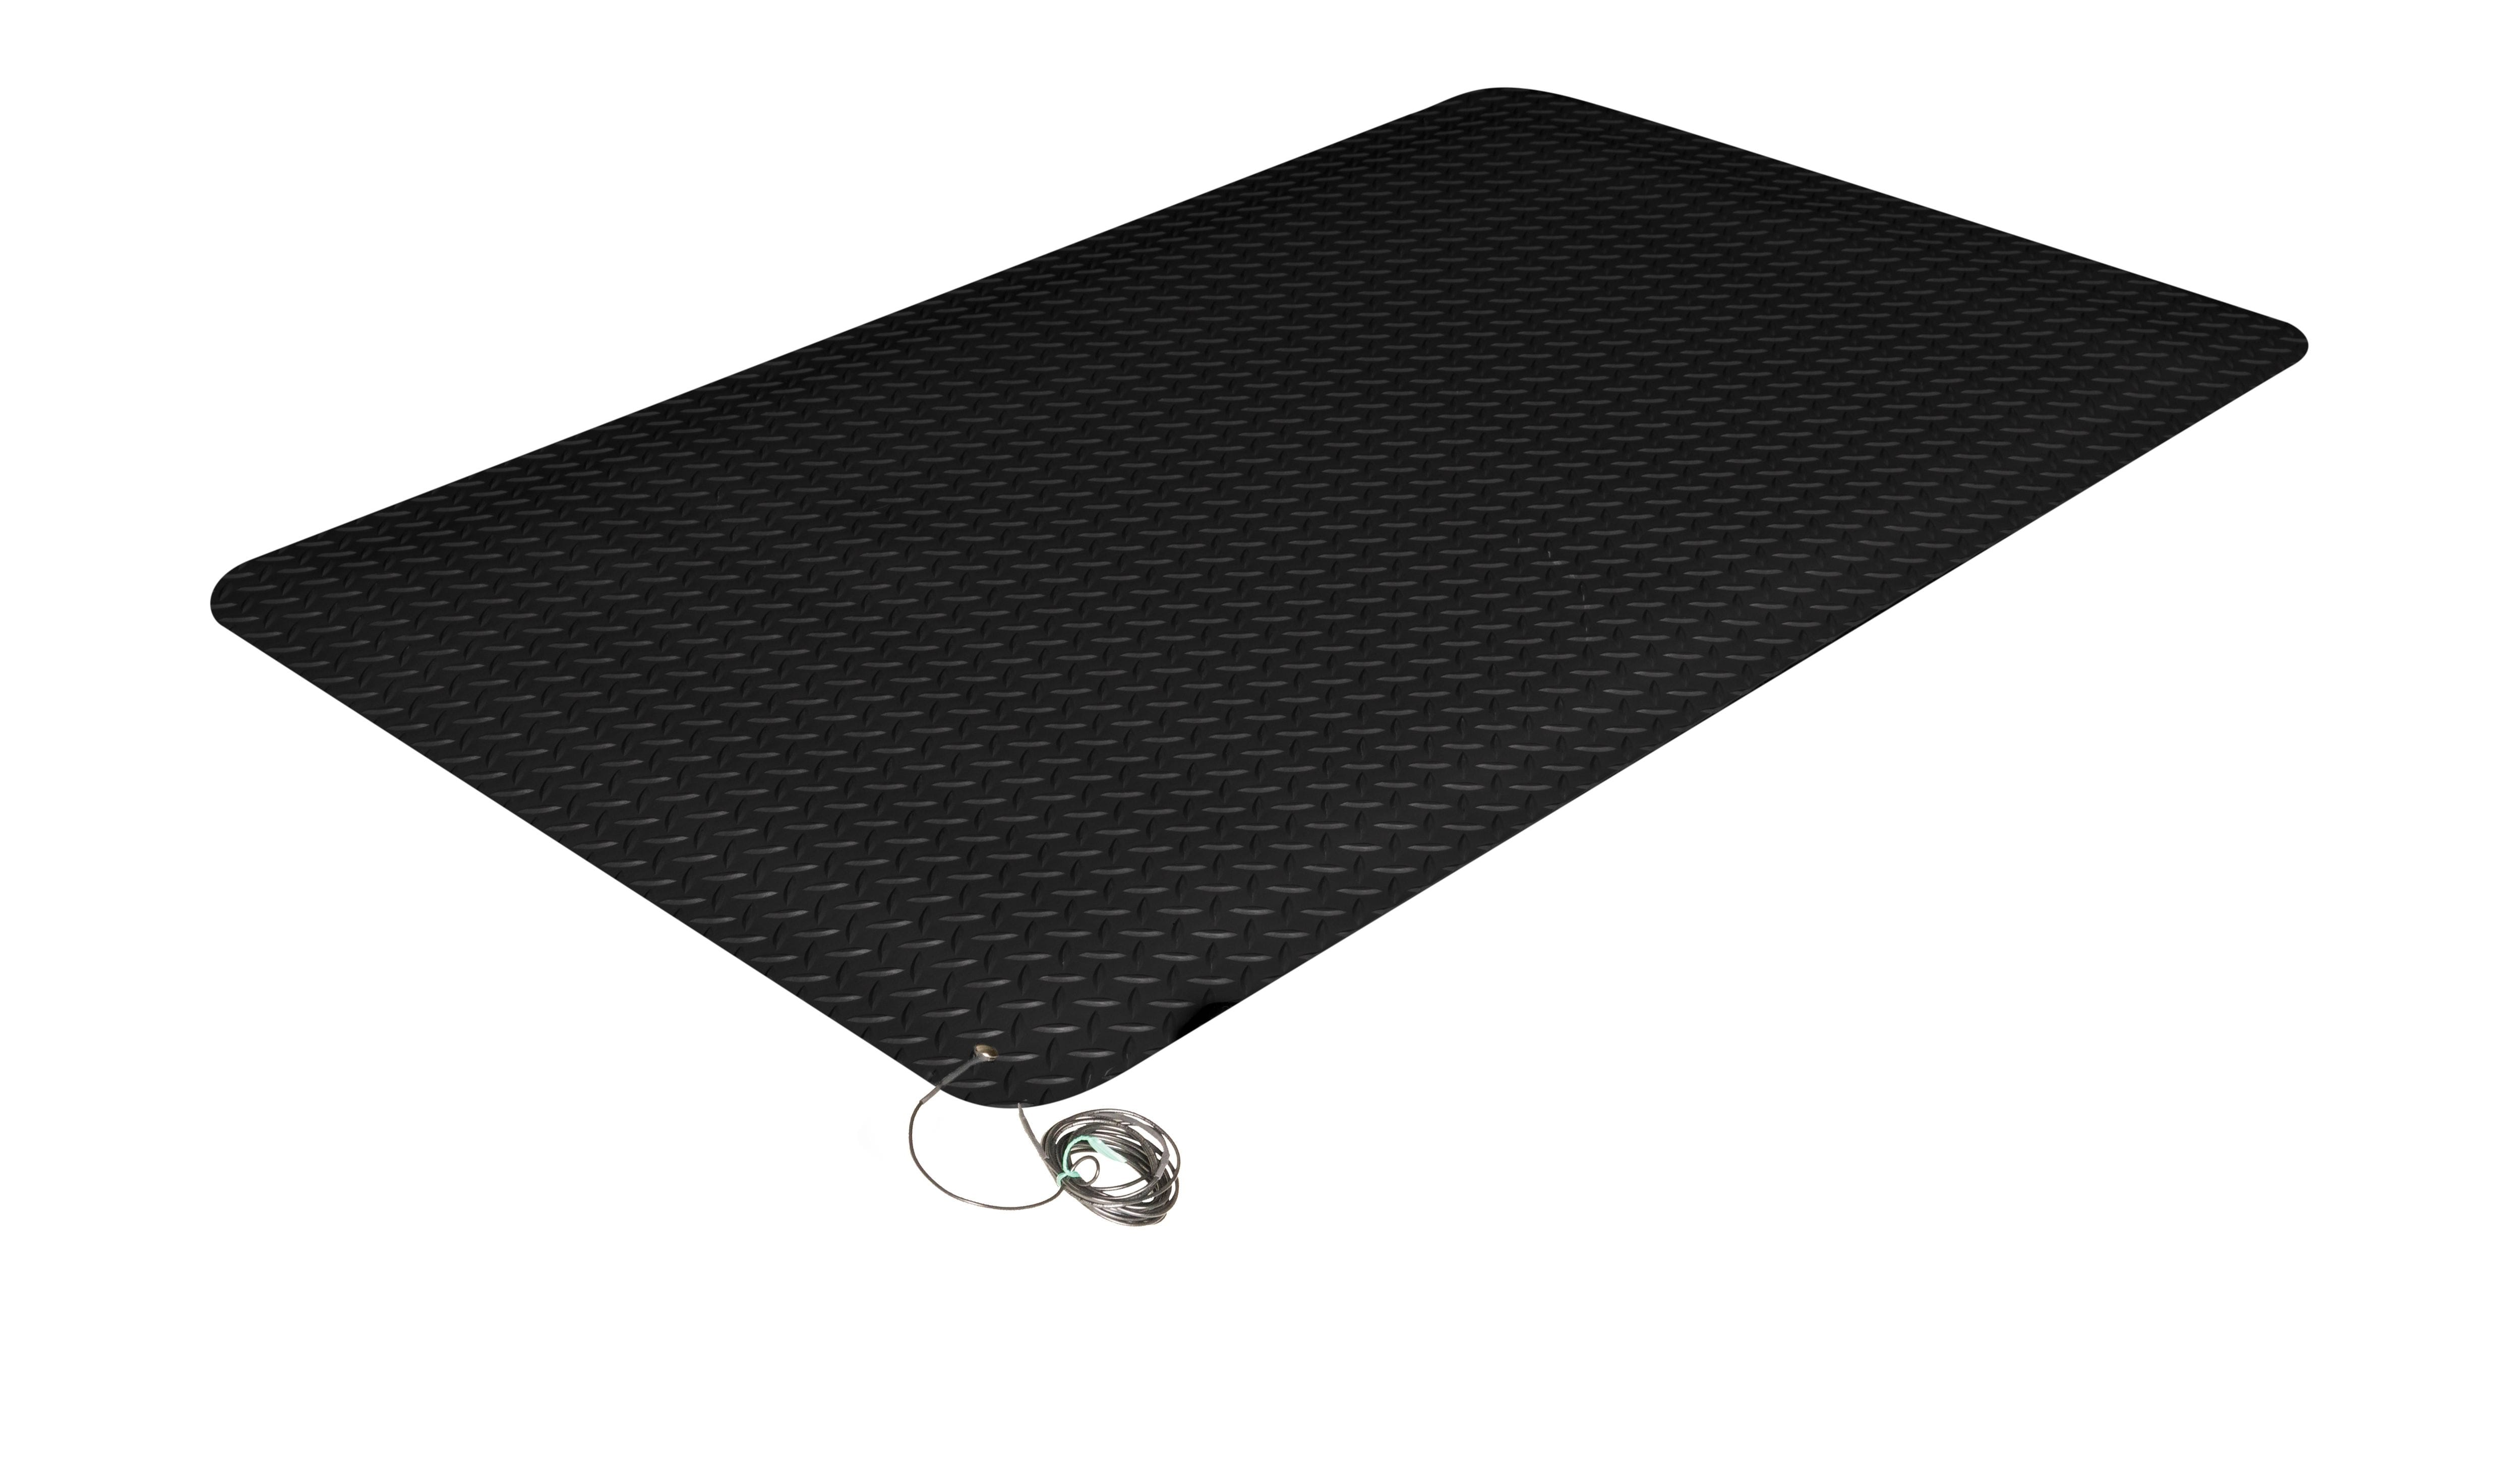 Electrically Conductive Deck Plate